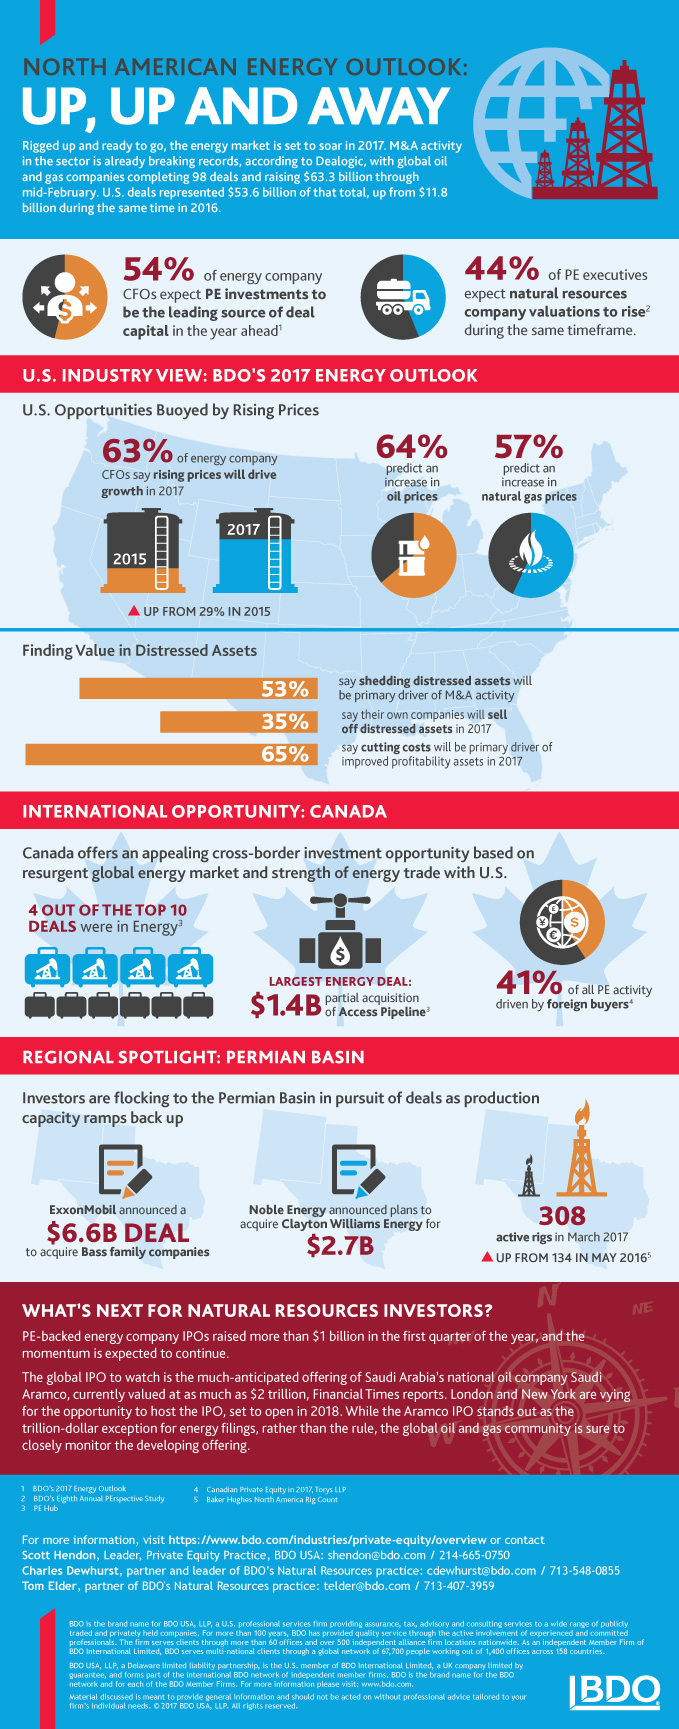 2017-PE-NA-Energy-Outlook-Infographic_Portrait-x679.jpg